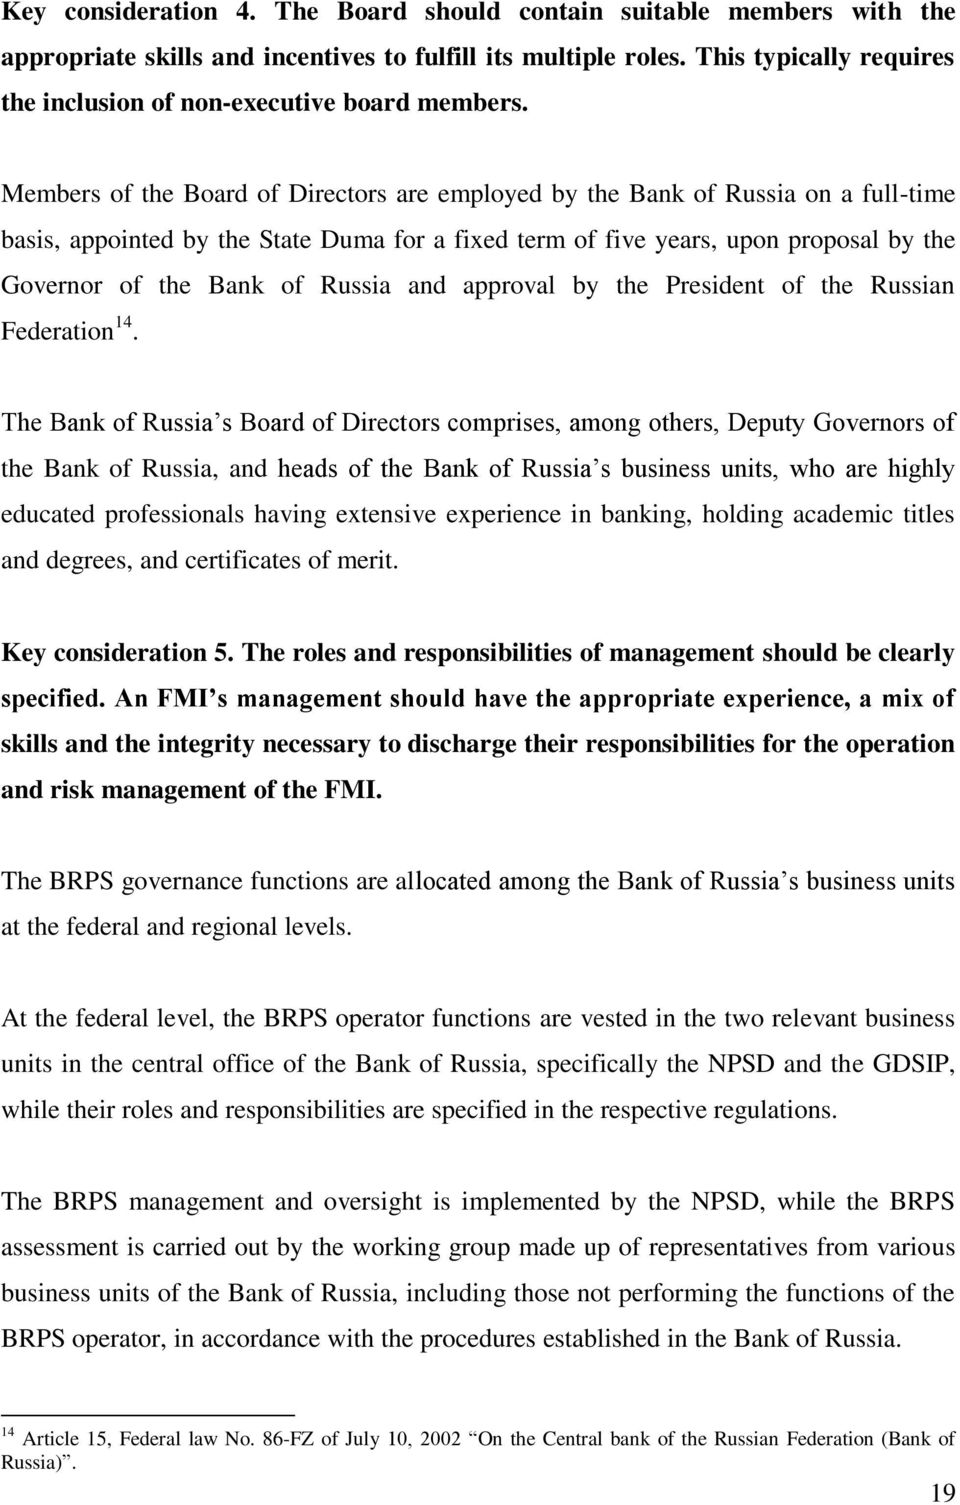 Members of the Board of Directors are employed by the Bank of Russia on a full-time basis, appointed by the State Duma for a fixed term of five years, upon proposal by the Governor of the Bank of